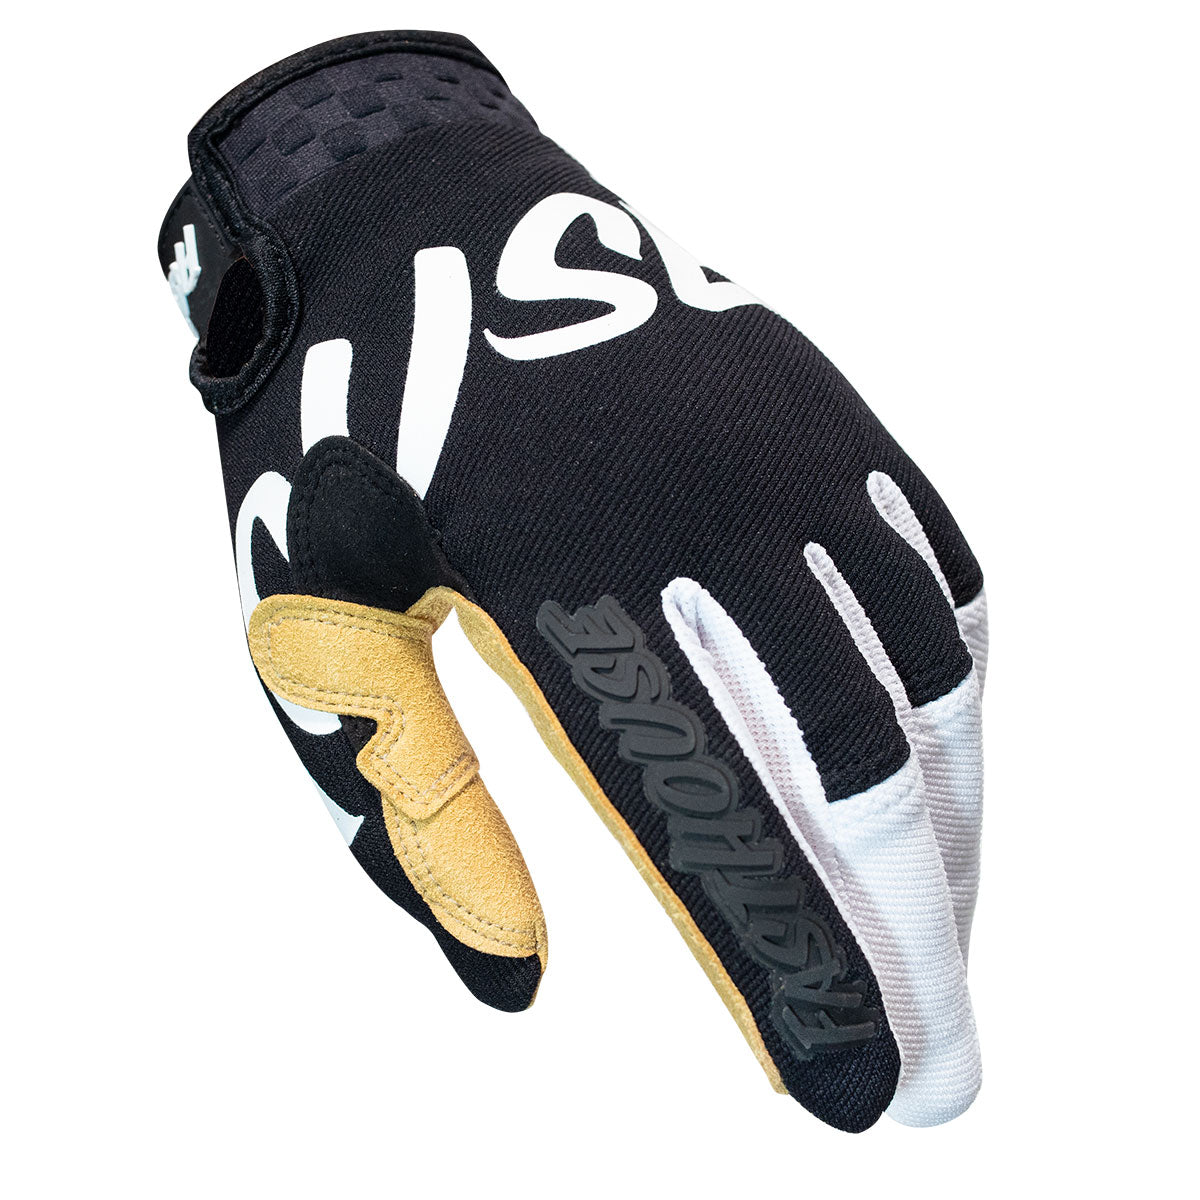 Sector Glove - Black/White